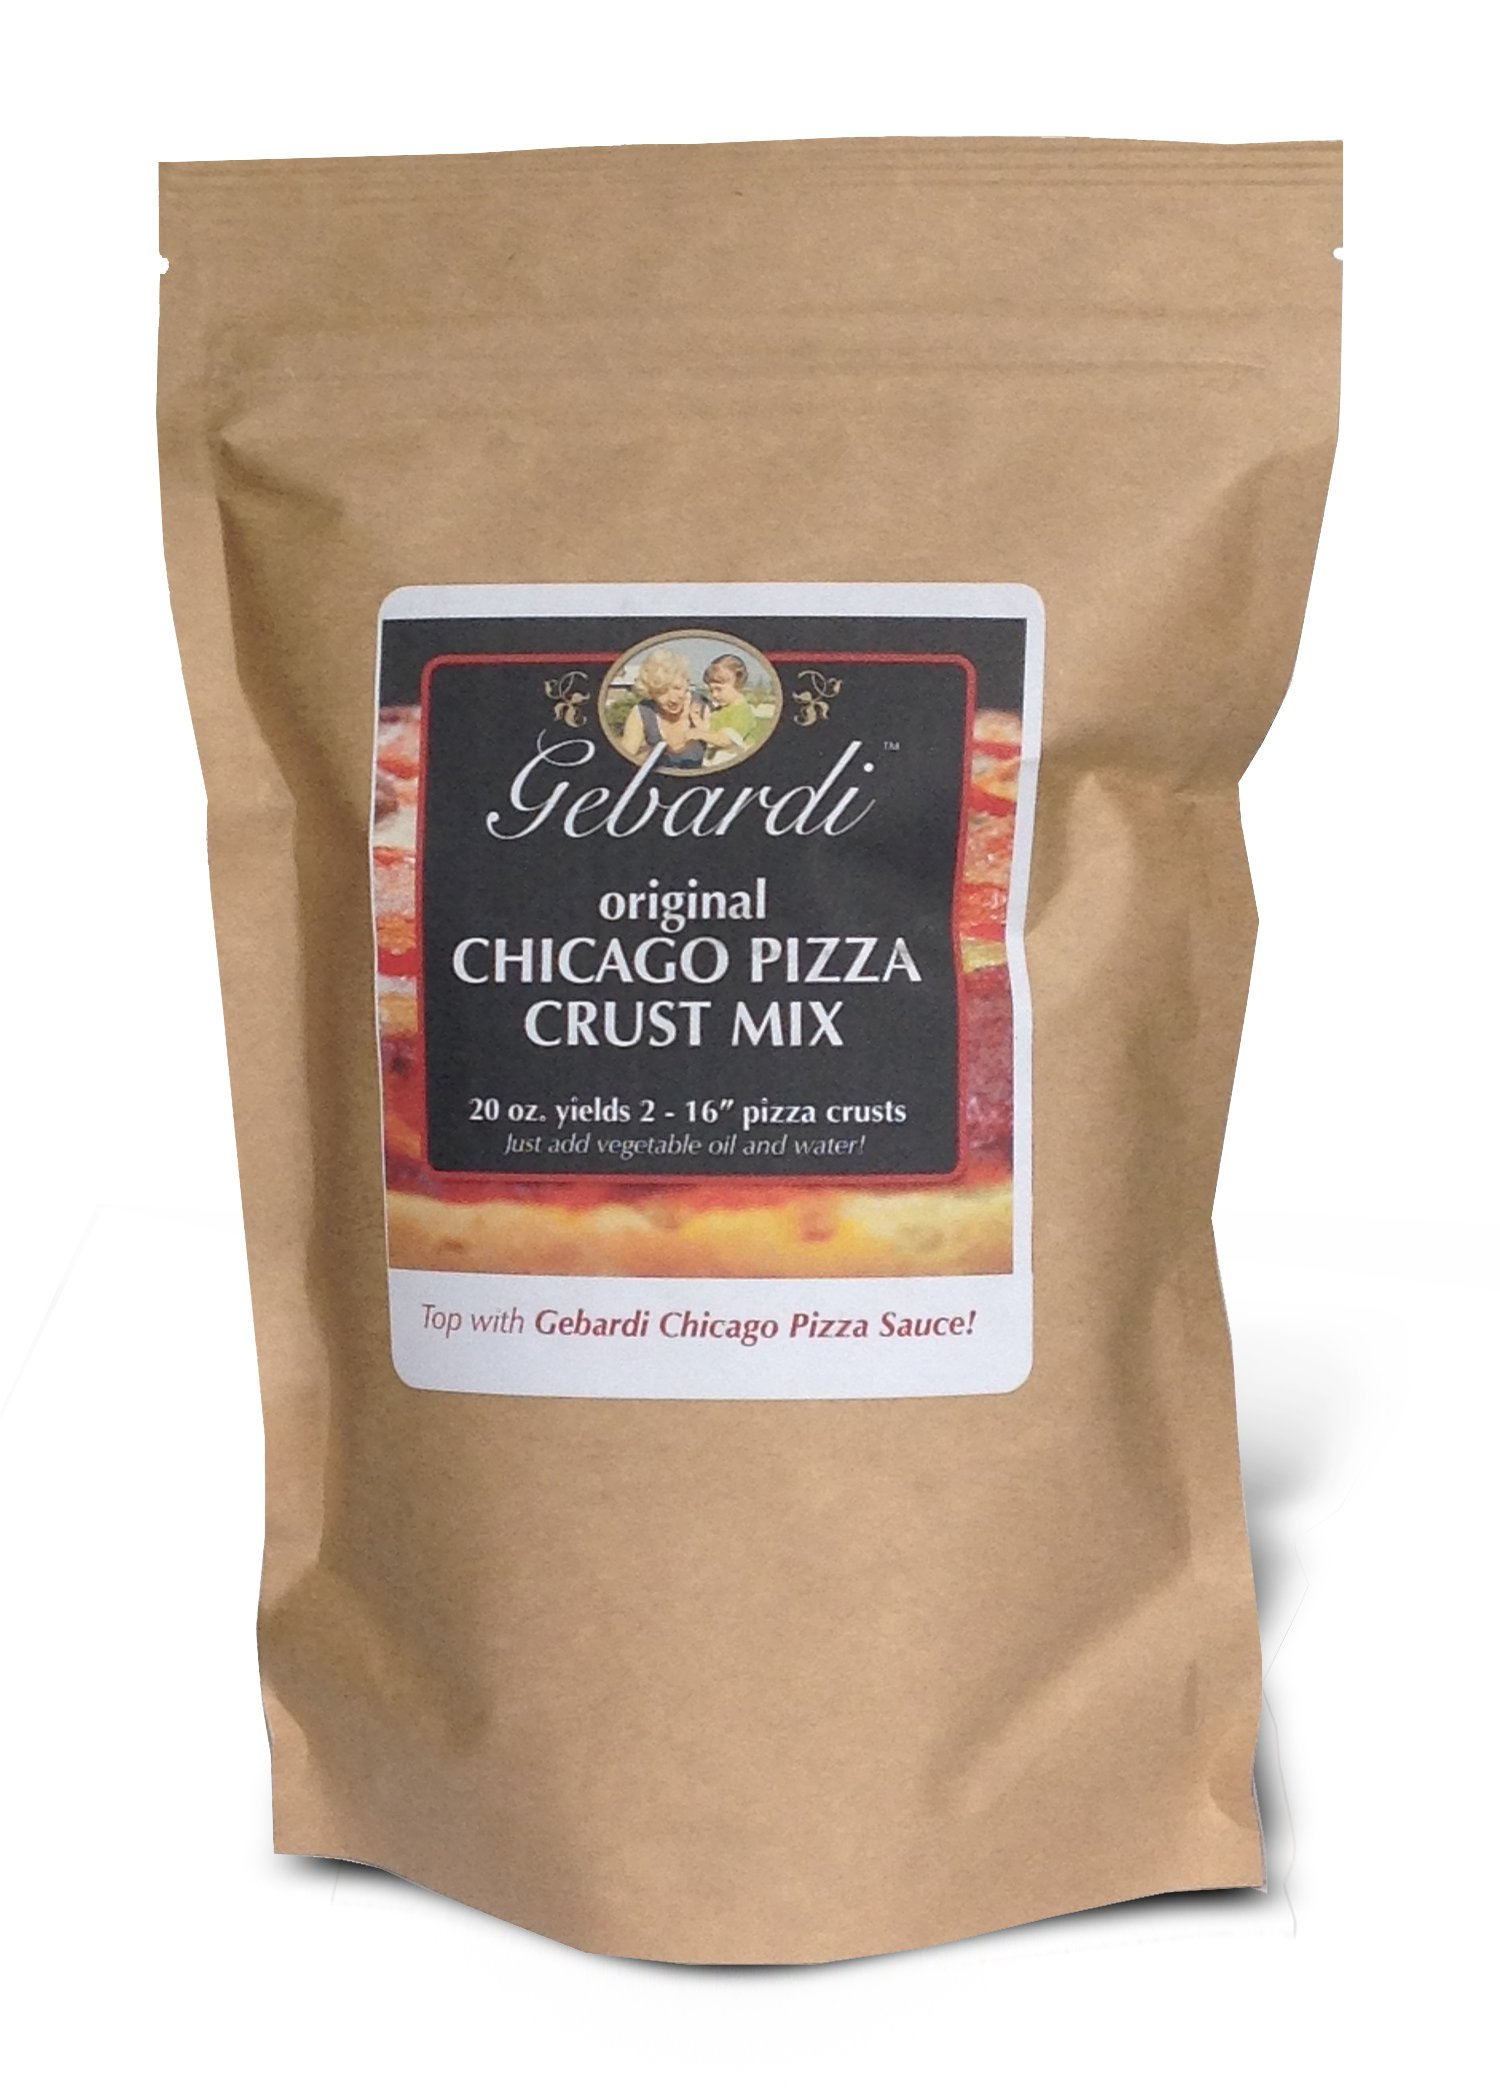 Gebardi Original Chicago Pizza Crust Mix, 20 oz.